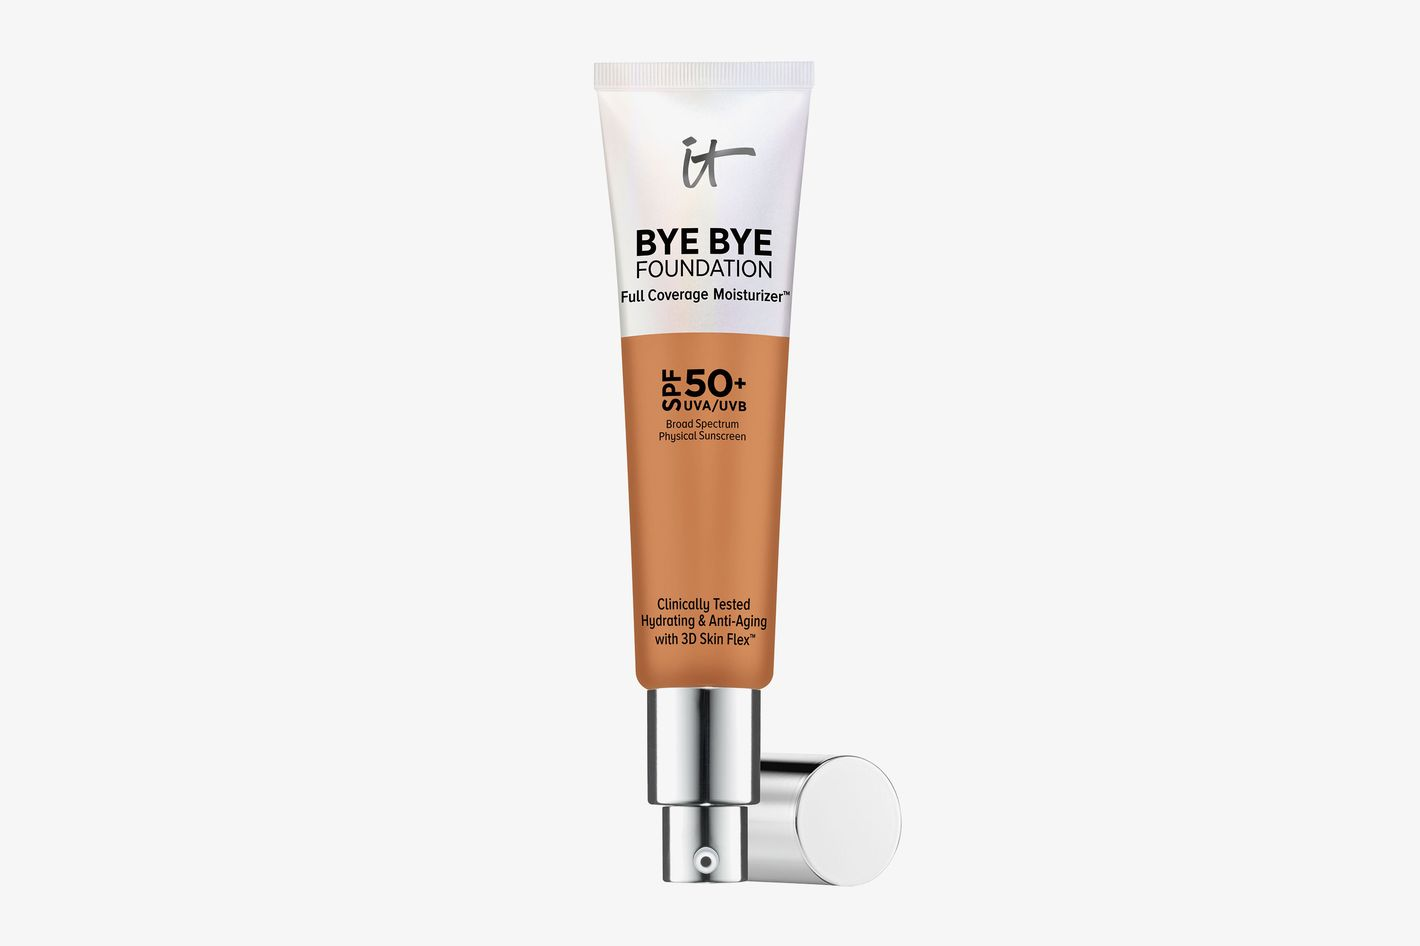 Bye Bye Foundation Full Coverage Moisturizer with SPF 50+ Tan